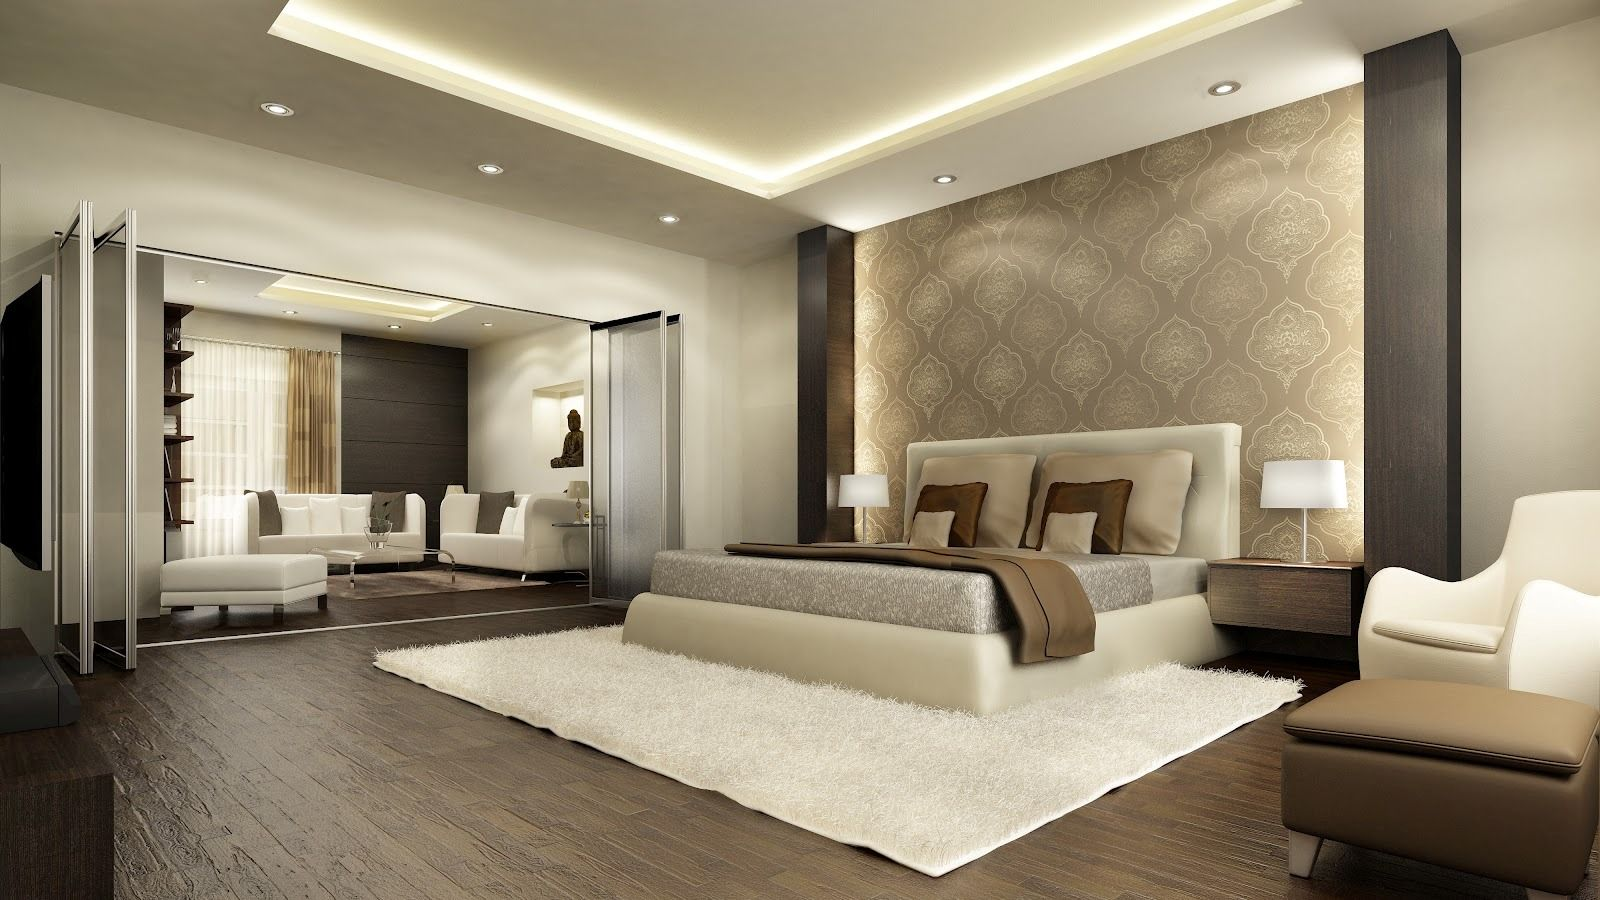 Luxury Bedroom Fascinating Luxury Strangely Bedroom Interior Design Fur Rug